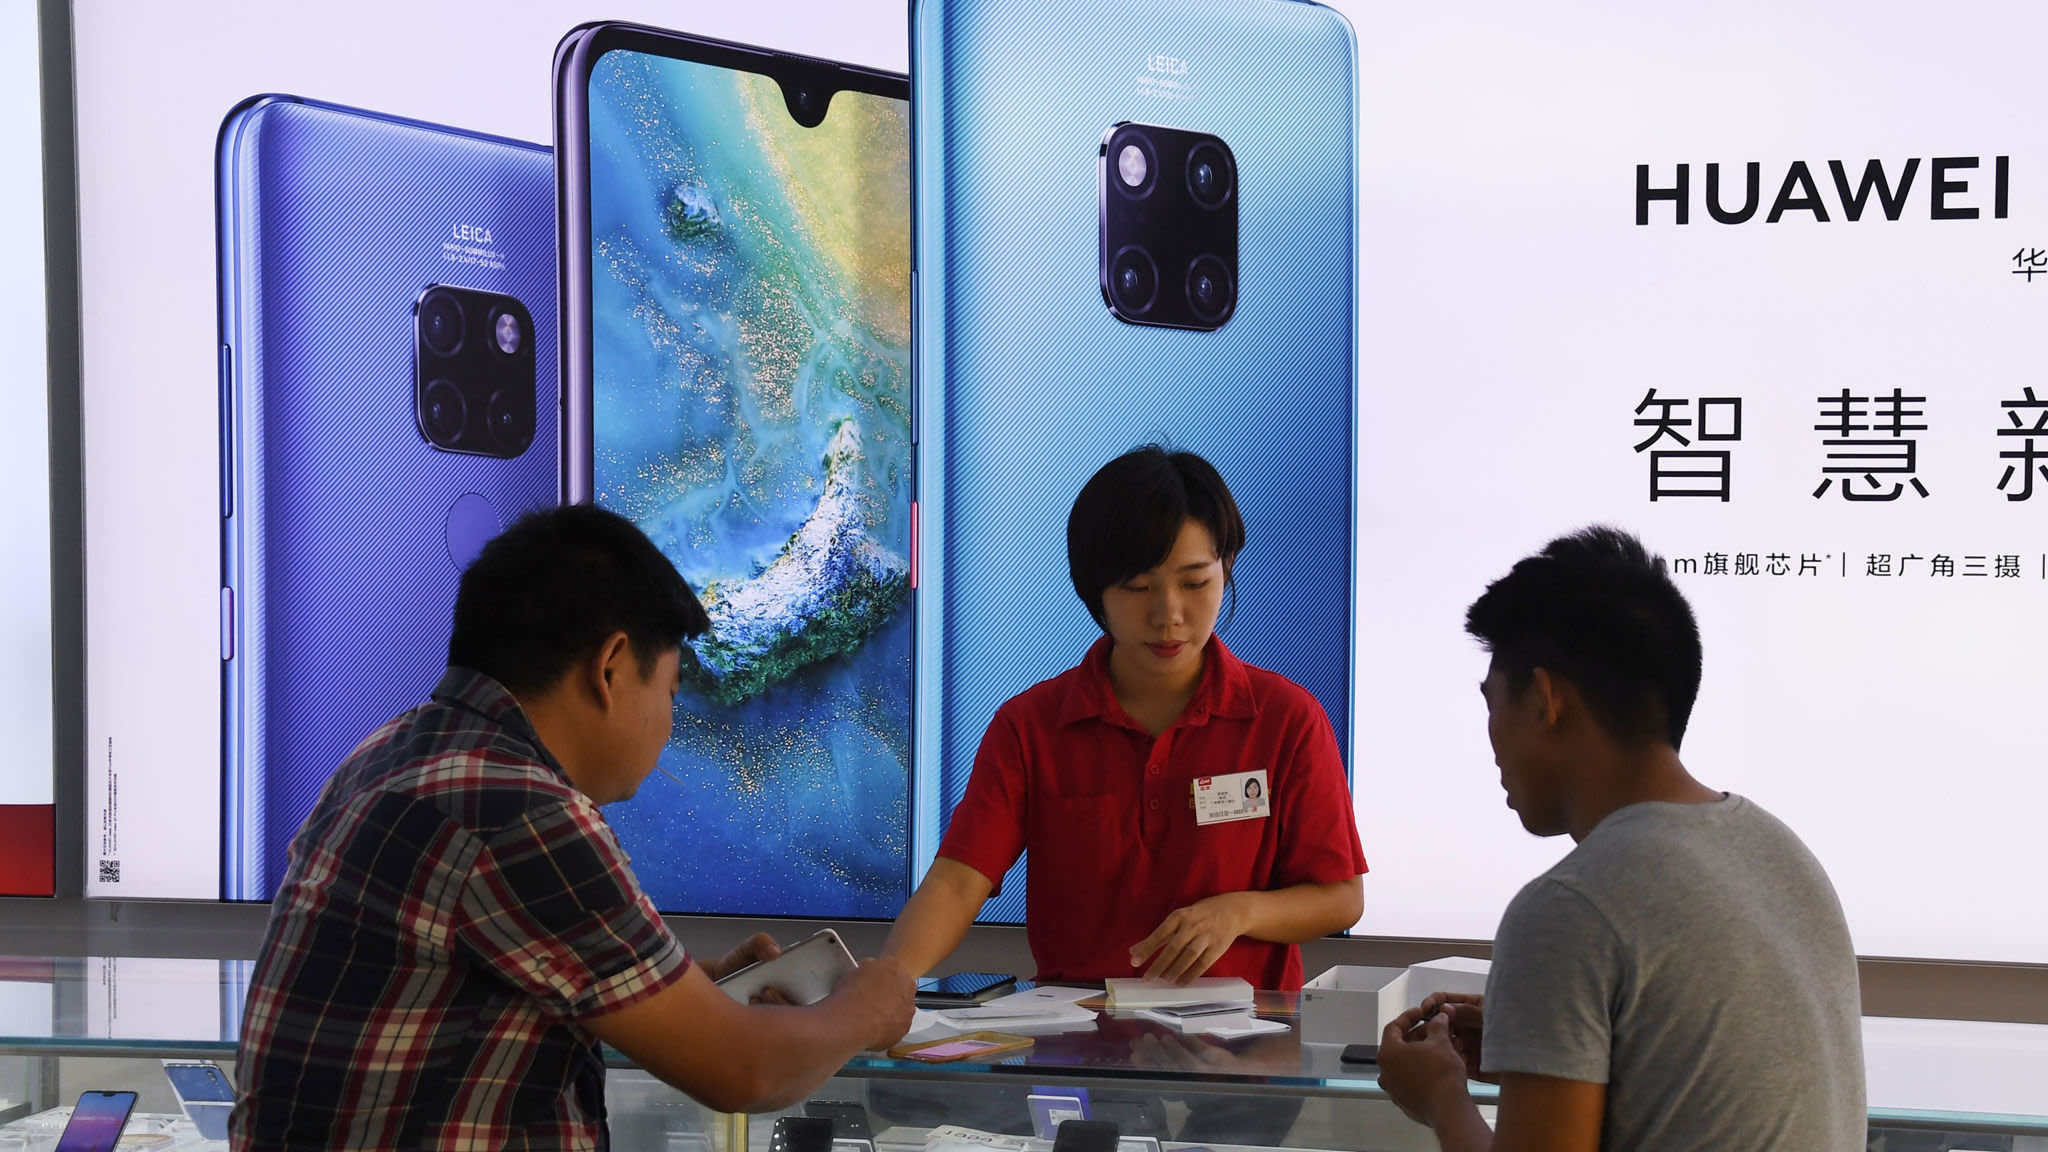 Calls renewed to keep Huawei out of American 5G